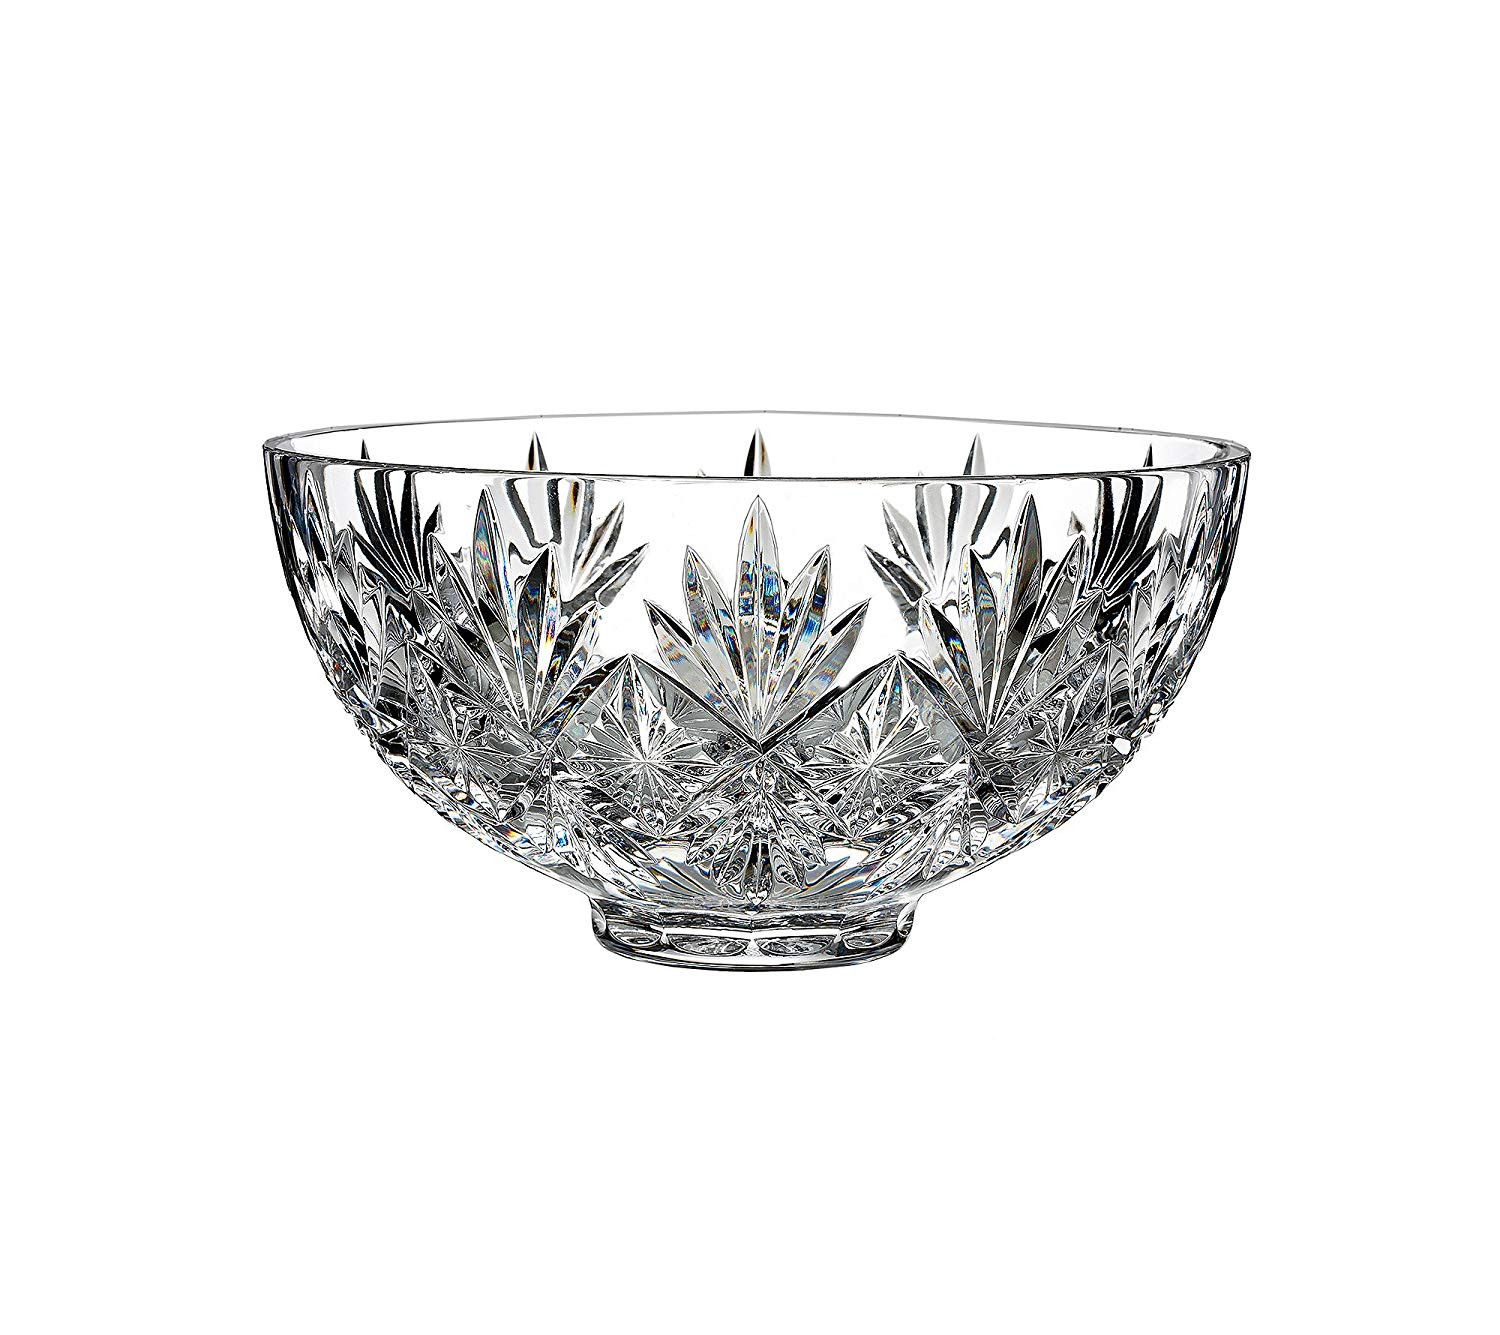 marquis by waterford 9 markham vase of amazon com waterford normandy bowl home kitchen pertaining to 81zzkvirj7l sl1500